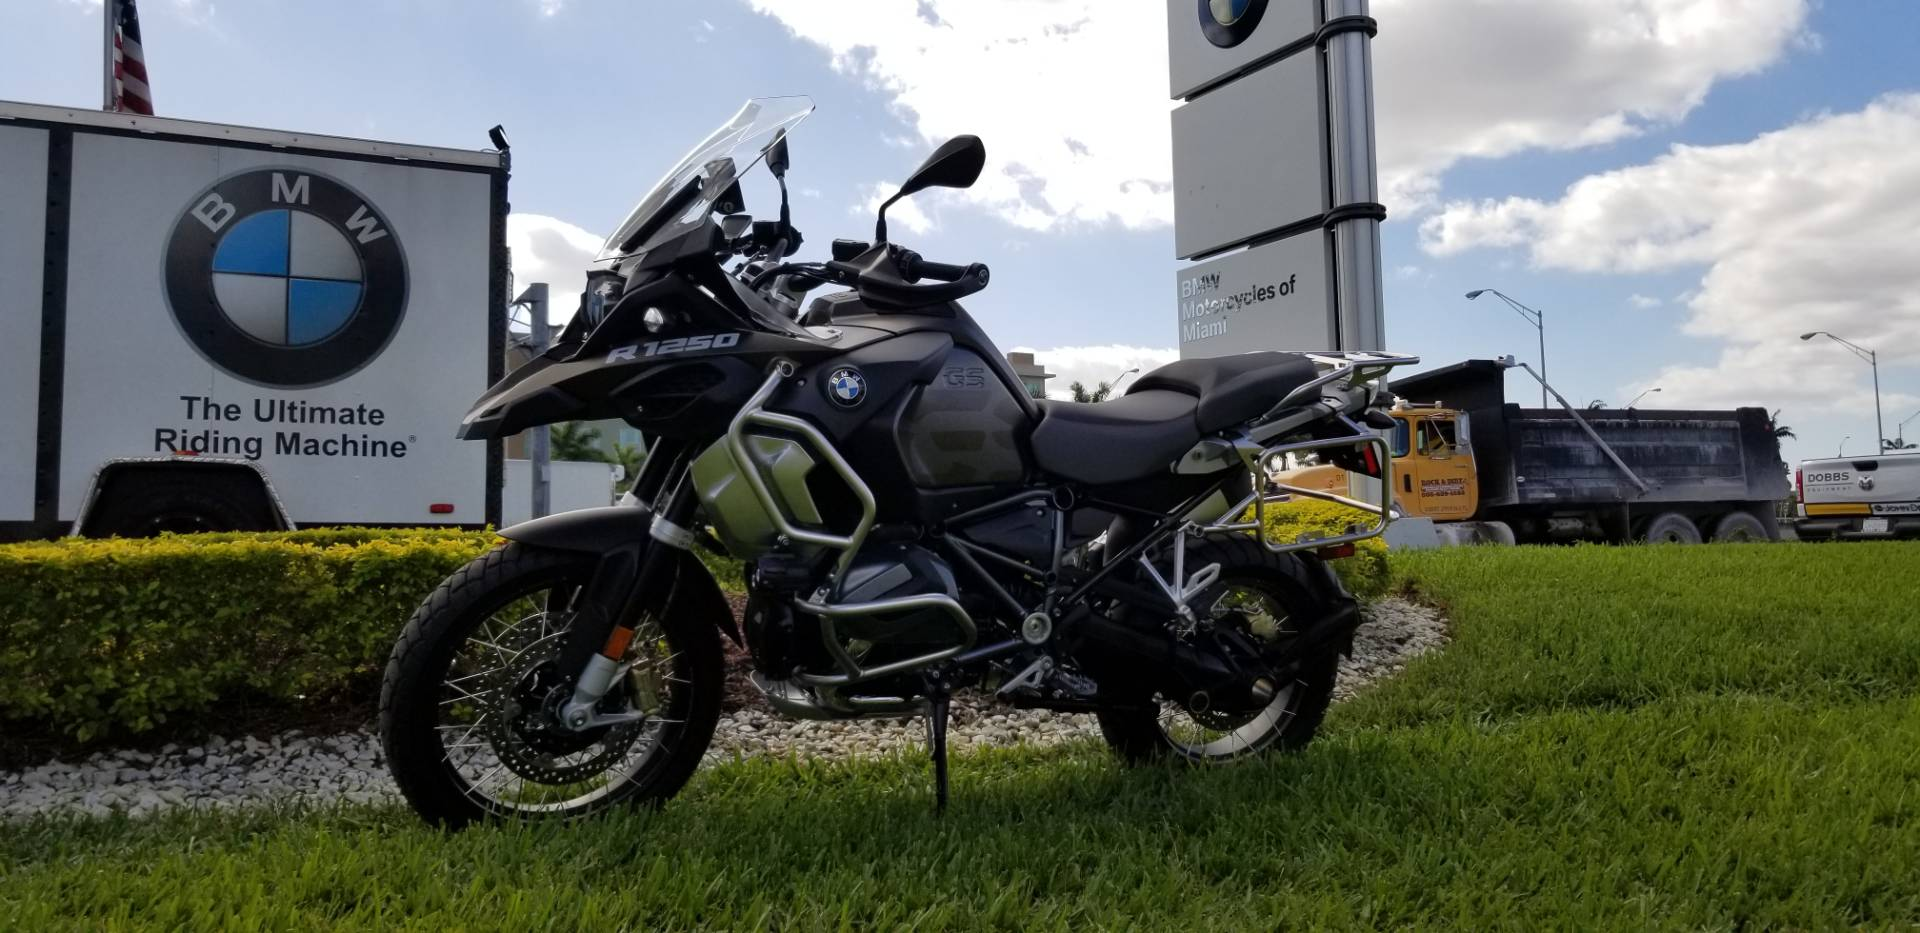 New 2019 BMW R 1250 GSA for sale, BMW for sale R 1250GSA, BMW Motorcycle R1250GSA, new BMW 1250GS Adventure, R1250GSAdventure, BMW Adventure, BMW Motorcycles of Miami, Motorcycles of Miami - Photo 7